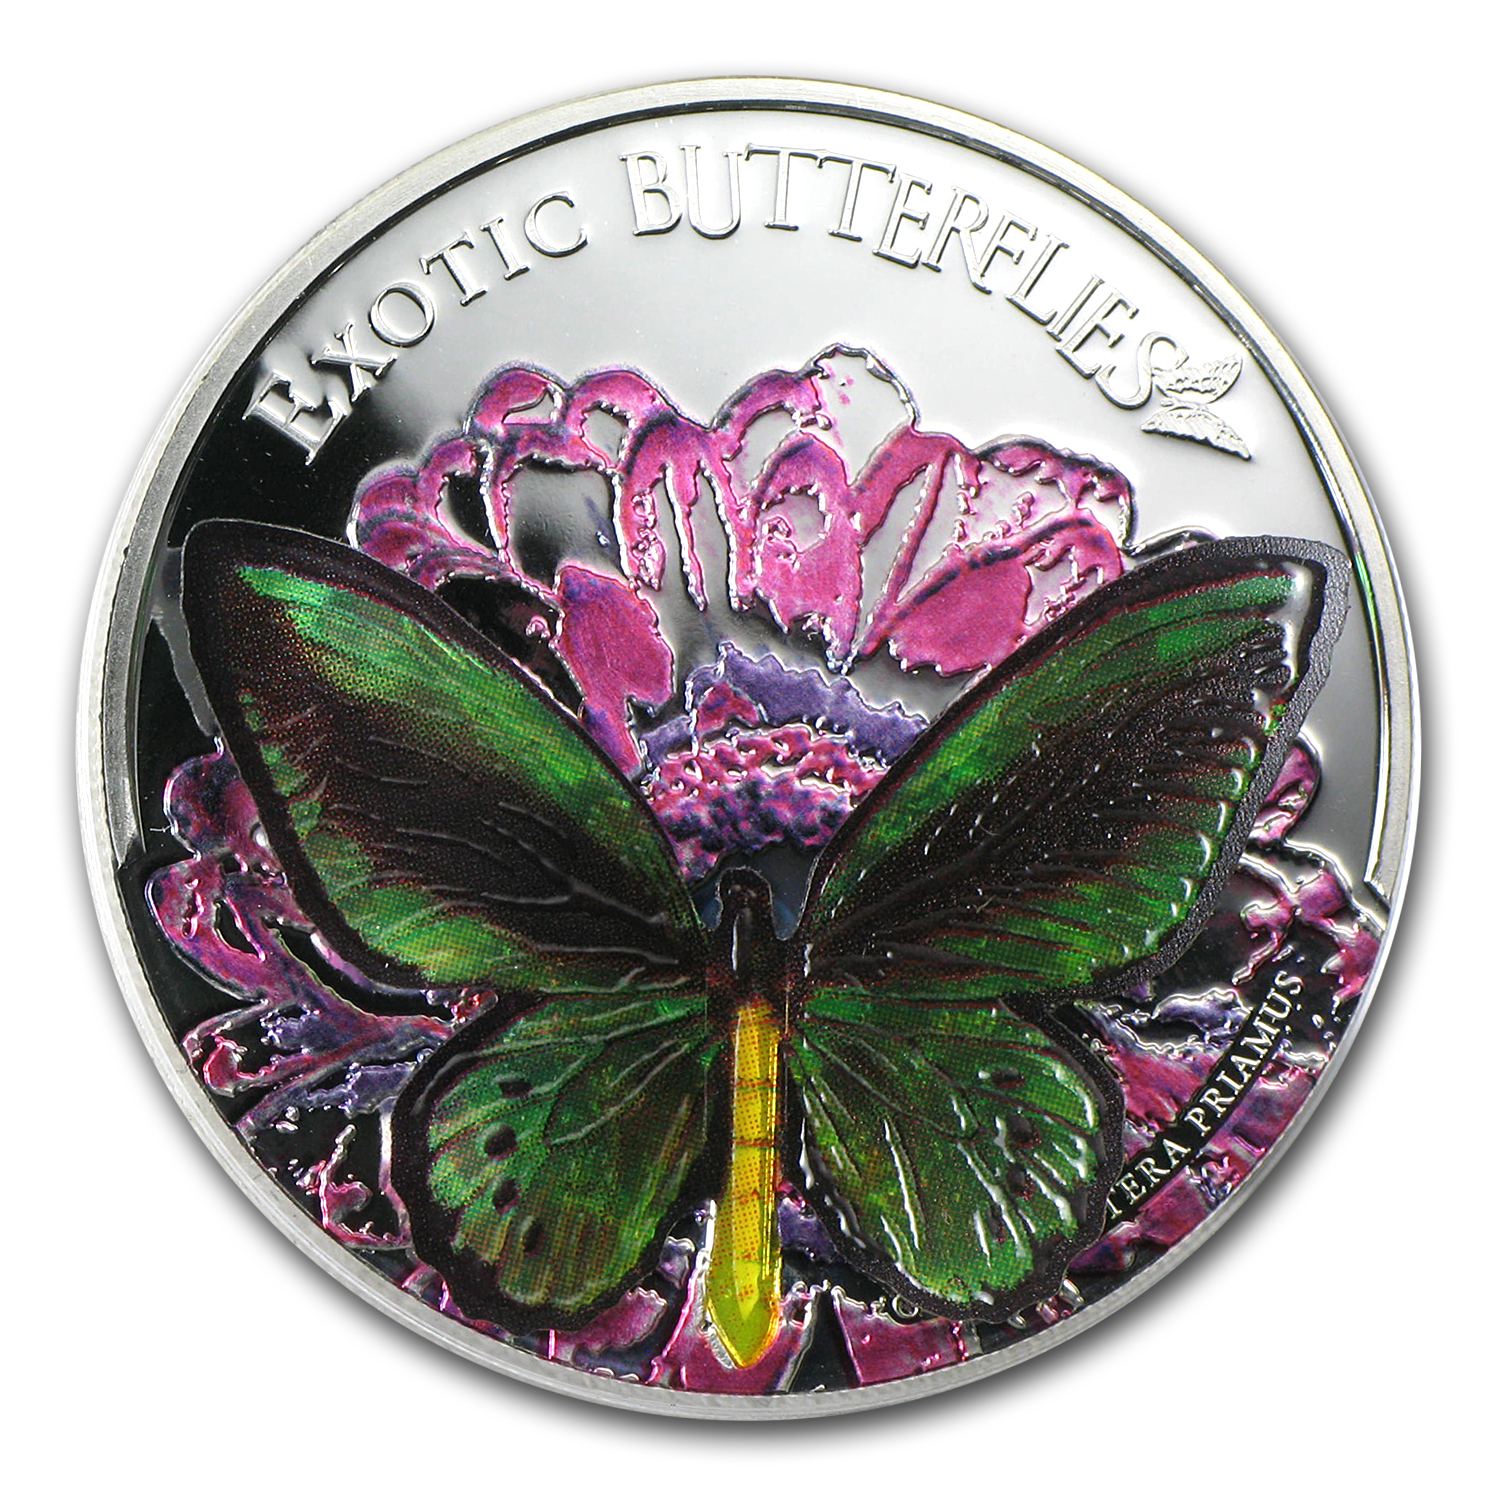 Tokelau 2012 Proof Silver 3D Exotic Butterflies